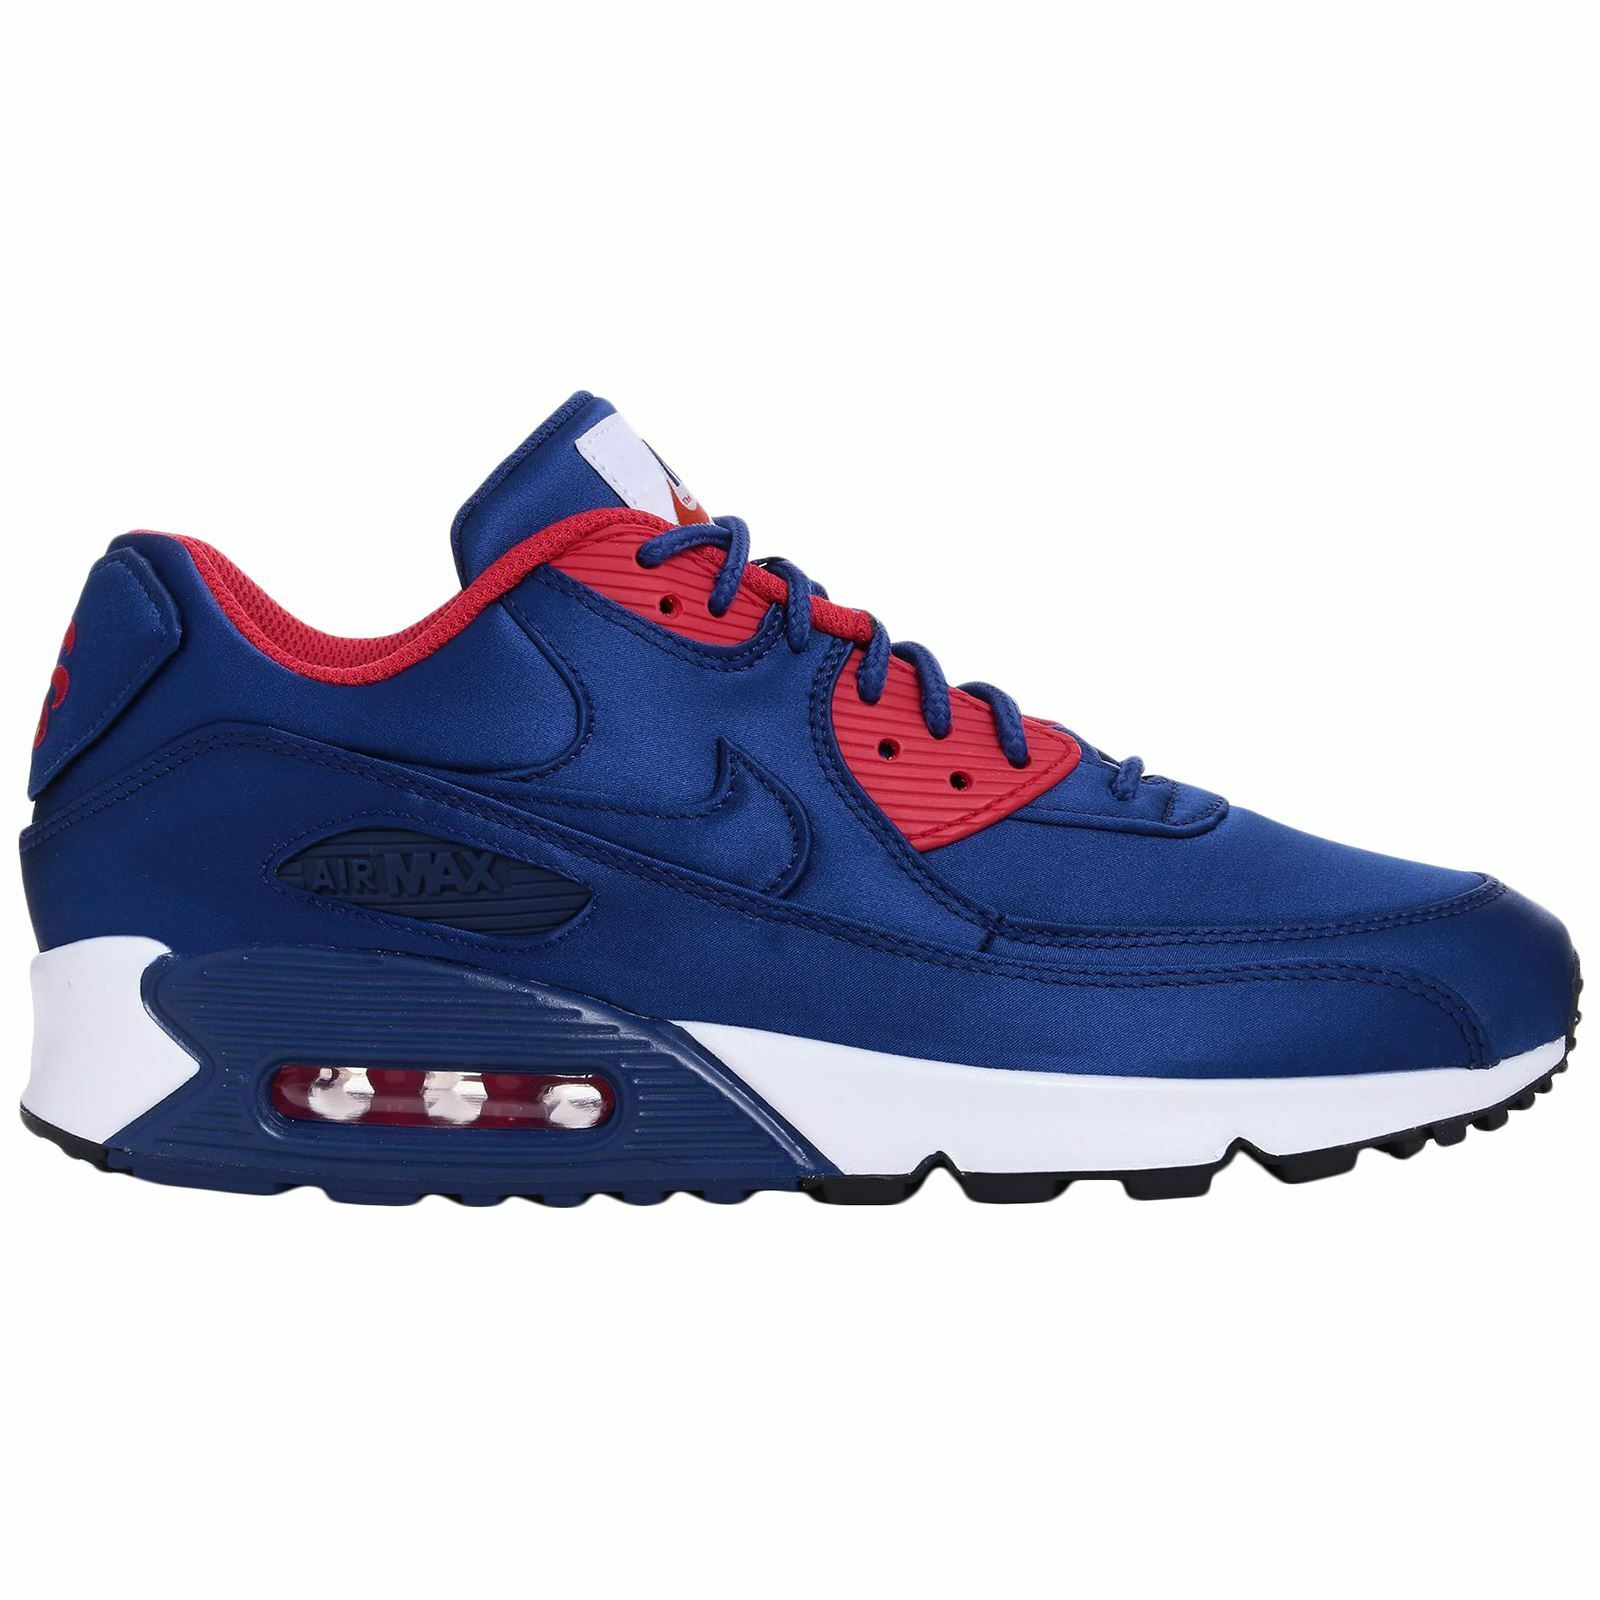 Nike Air Max 90 SE Nylon Lace-Up Low-Top Sneakers Mens Trainers